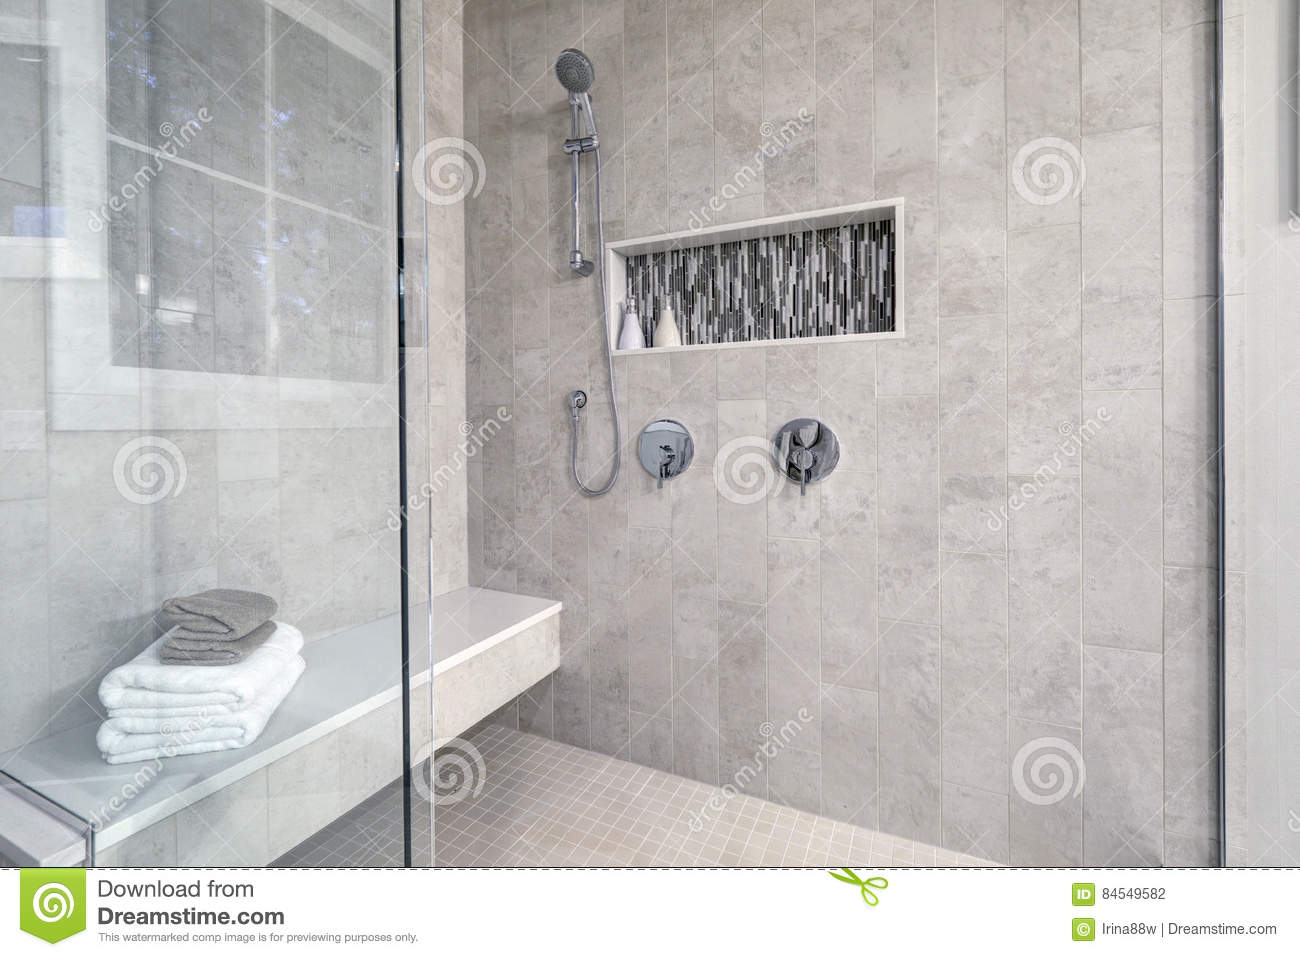 Glass Walk-in Shower In A Bathroom Of Brand New Home Stock Photo ...